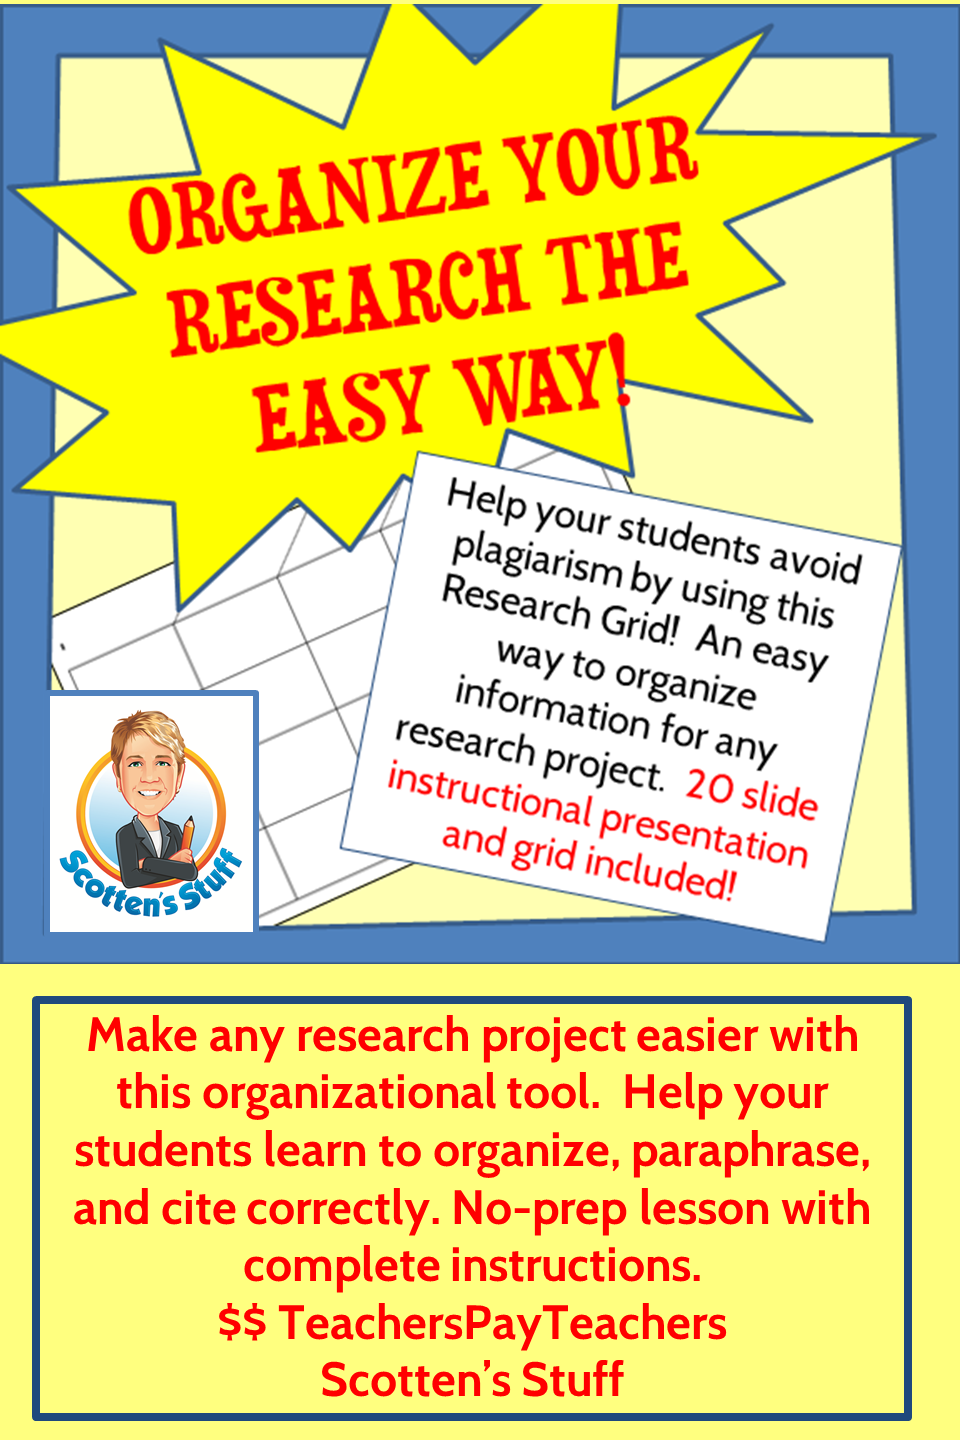 Perfect For Middle And High School Thi Method Of Organizing Research Make It Easy Your Student Information Literacy Teaching Computer Skills Plagiarism Proper Paraphrasing